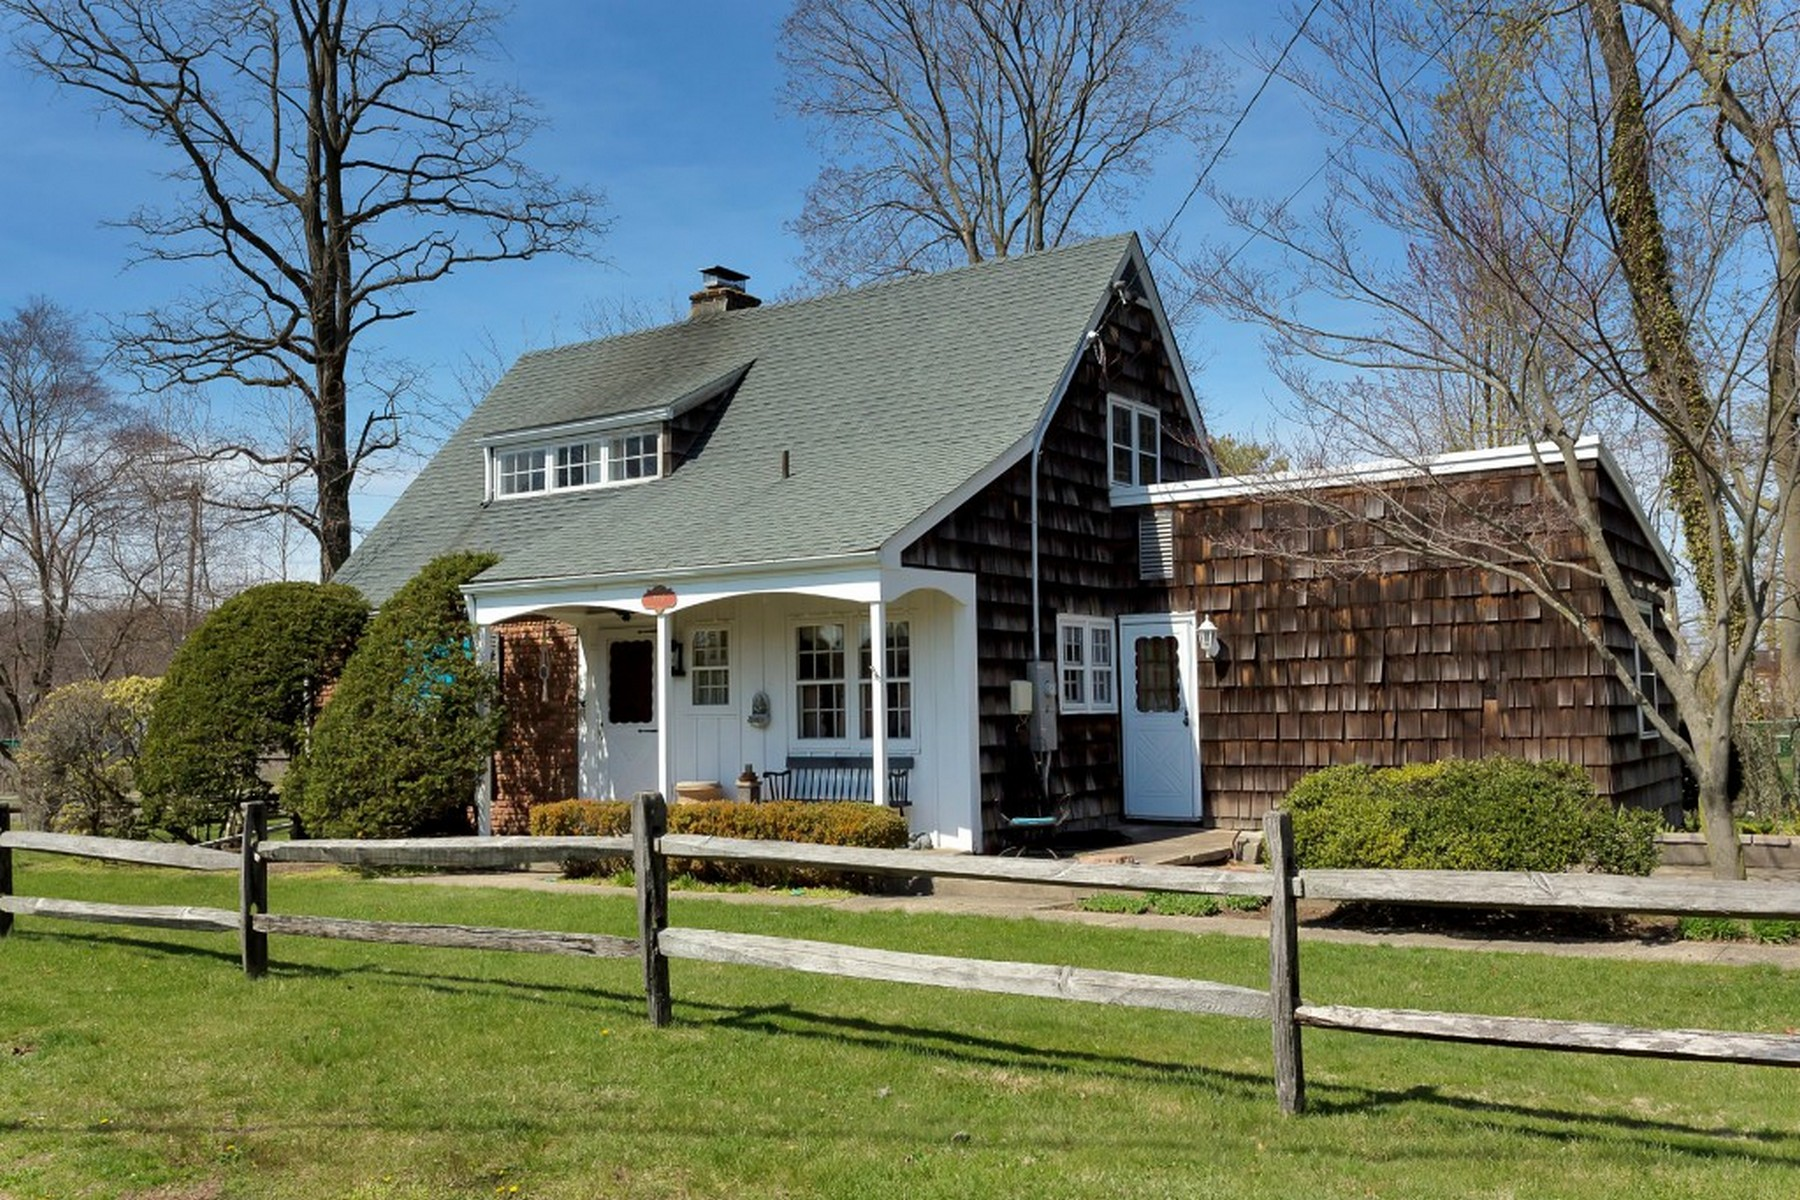 Single Family Home for Sale at Cape 2 Cliftwood Dr Huntington, New York, 11743 United States